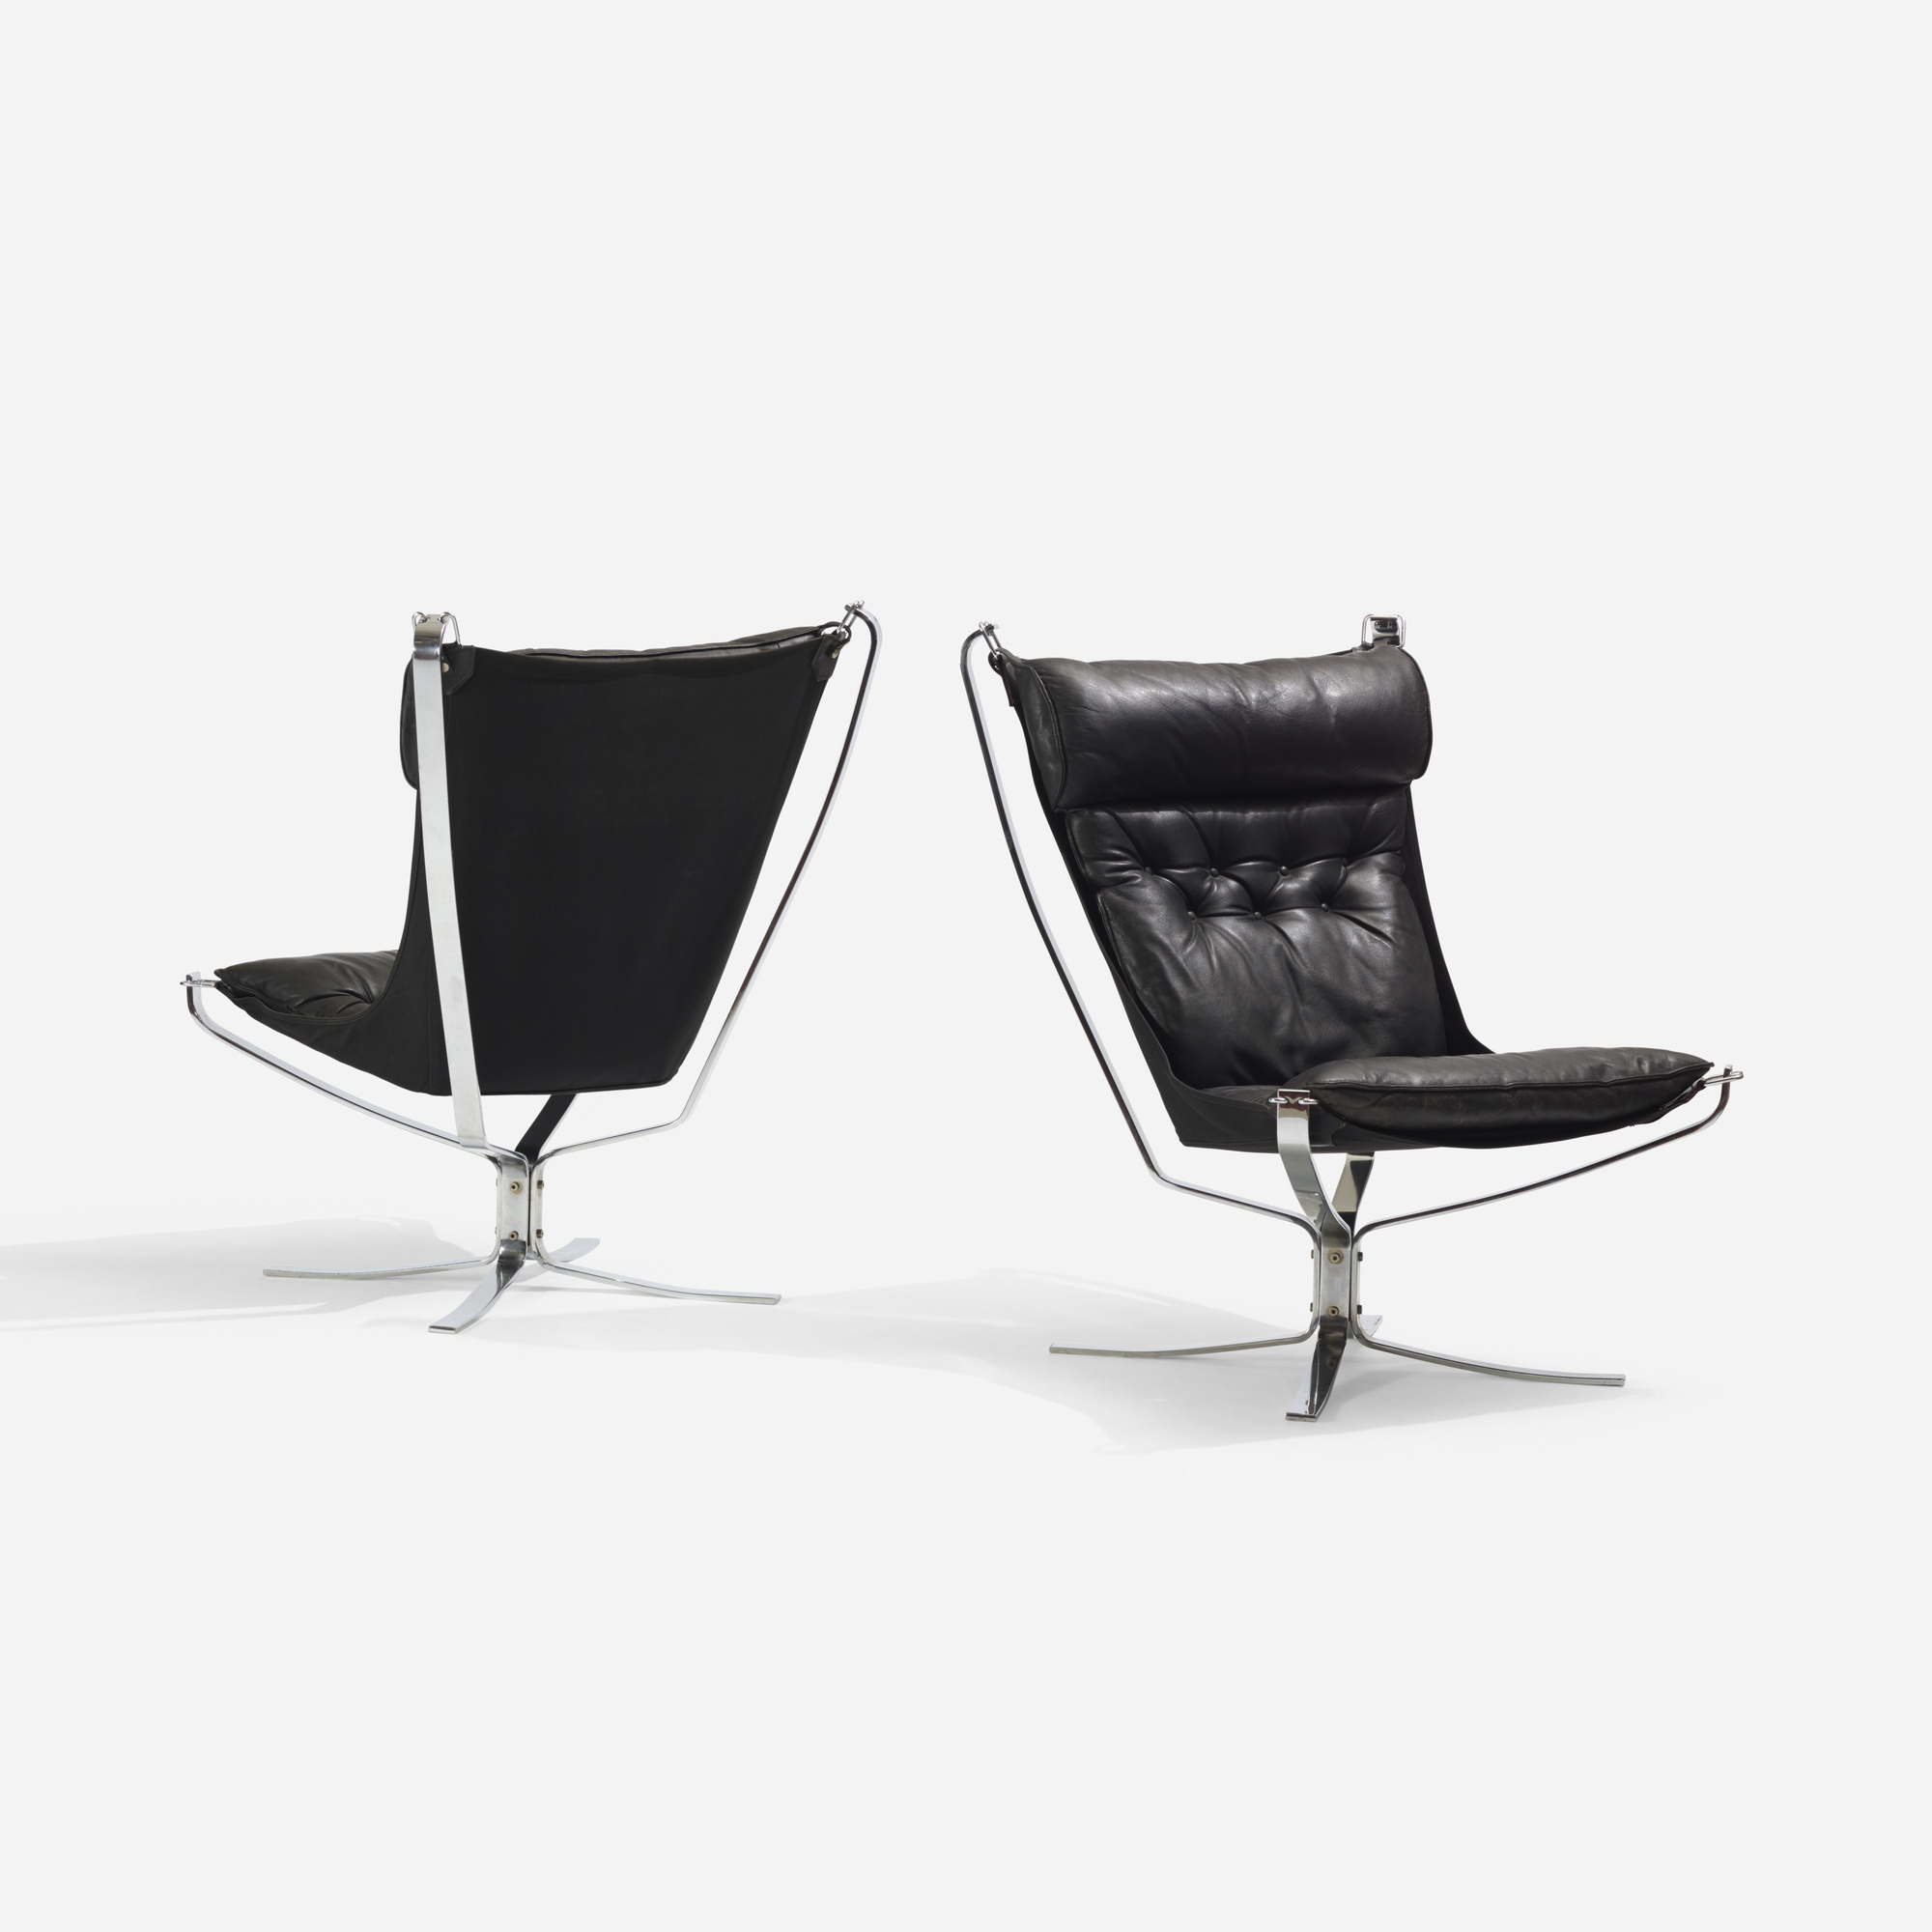 179: Sigurd Resell / Falcon chairs, pair (1 of 3)